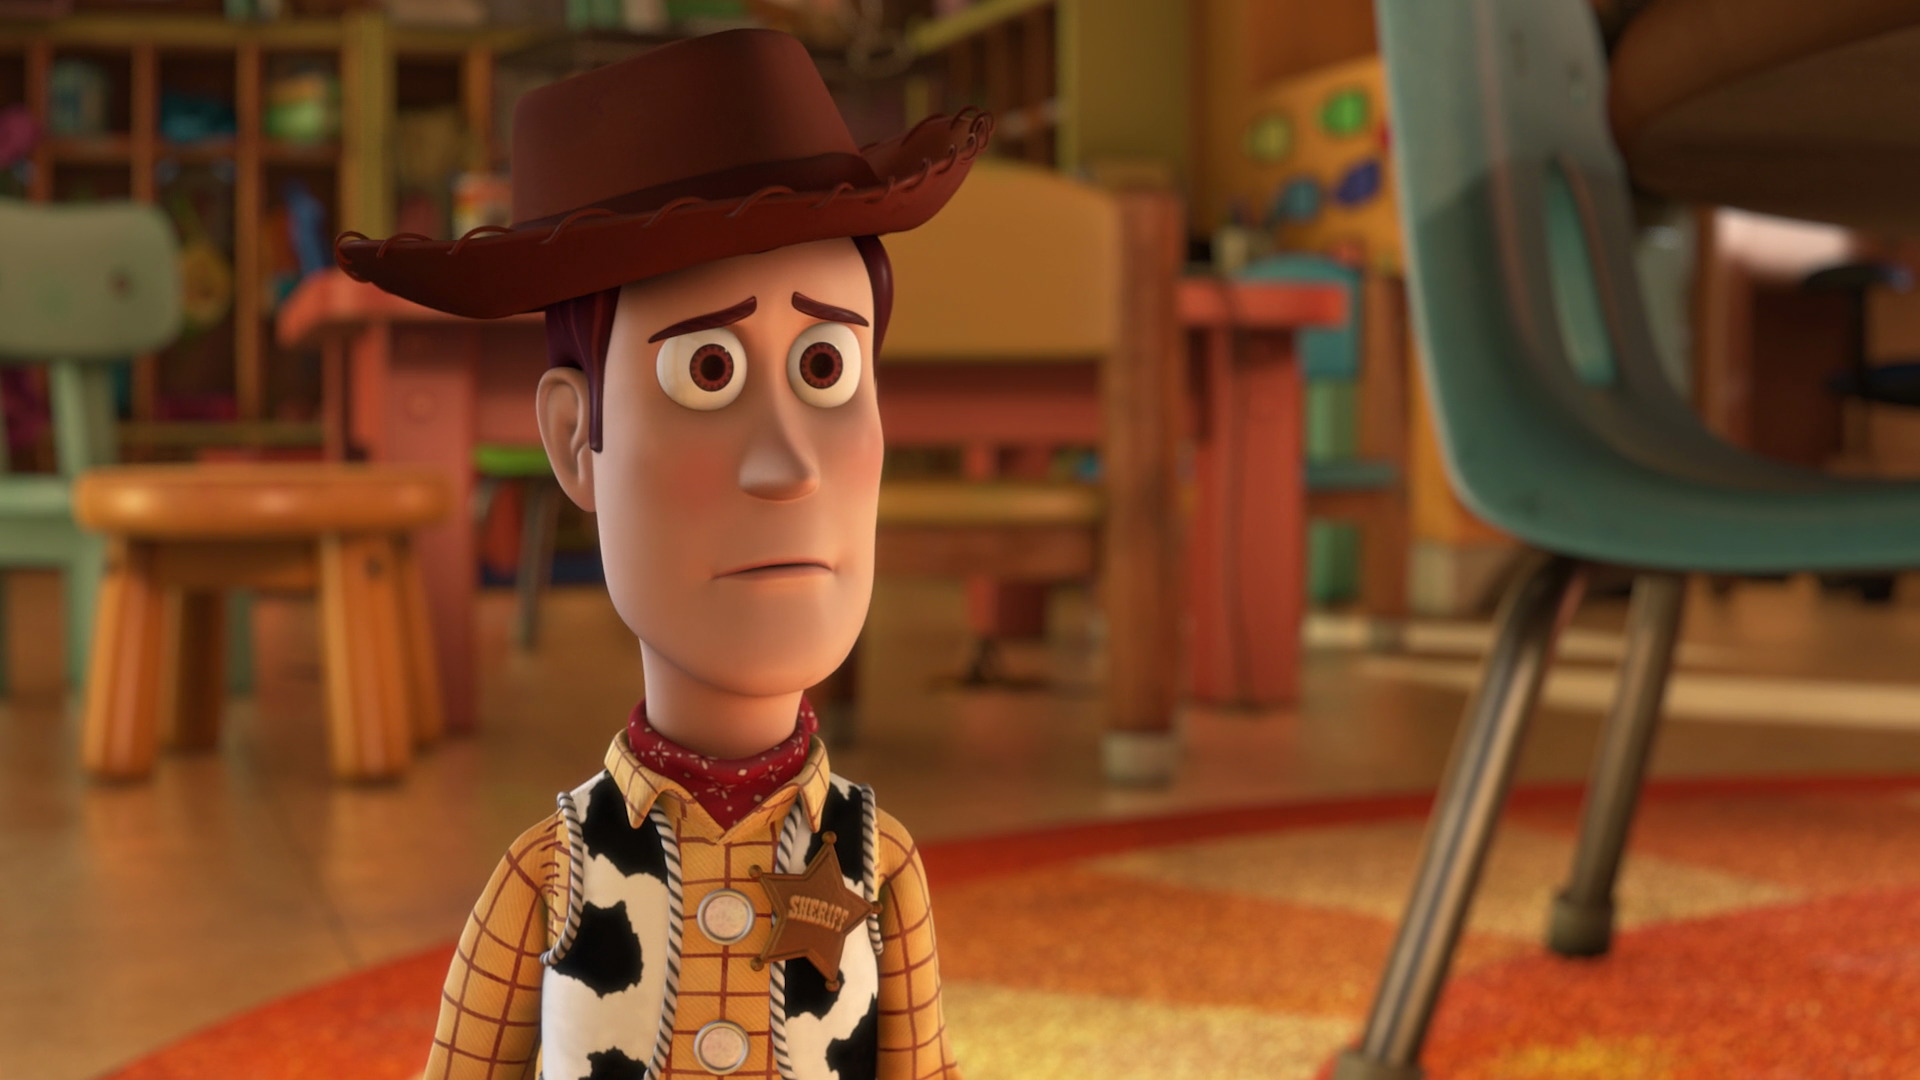 Woody Personnage Dans Toy Story Pixar Planetfr